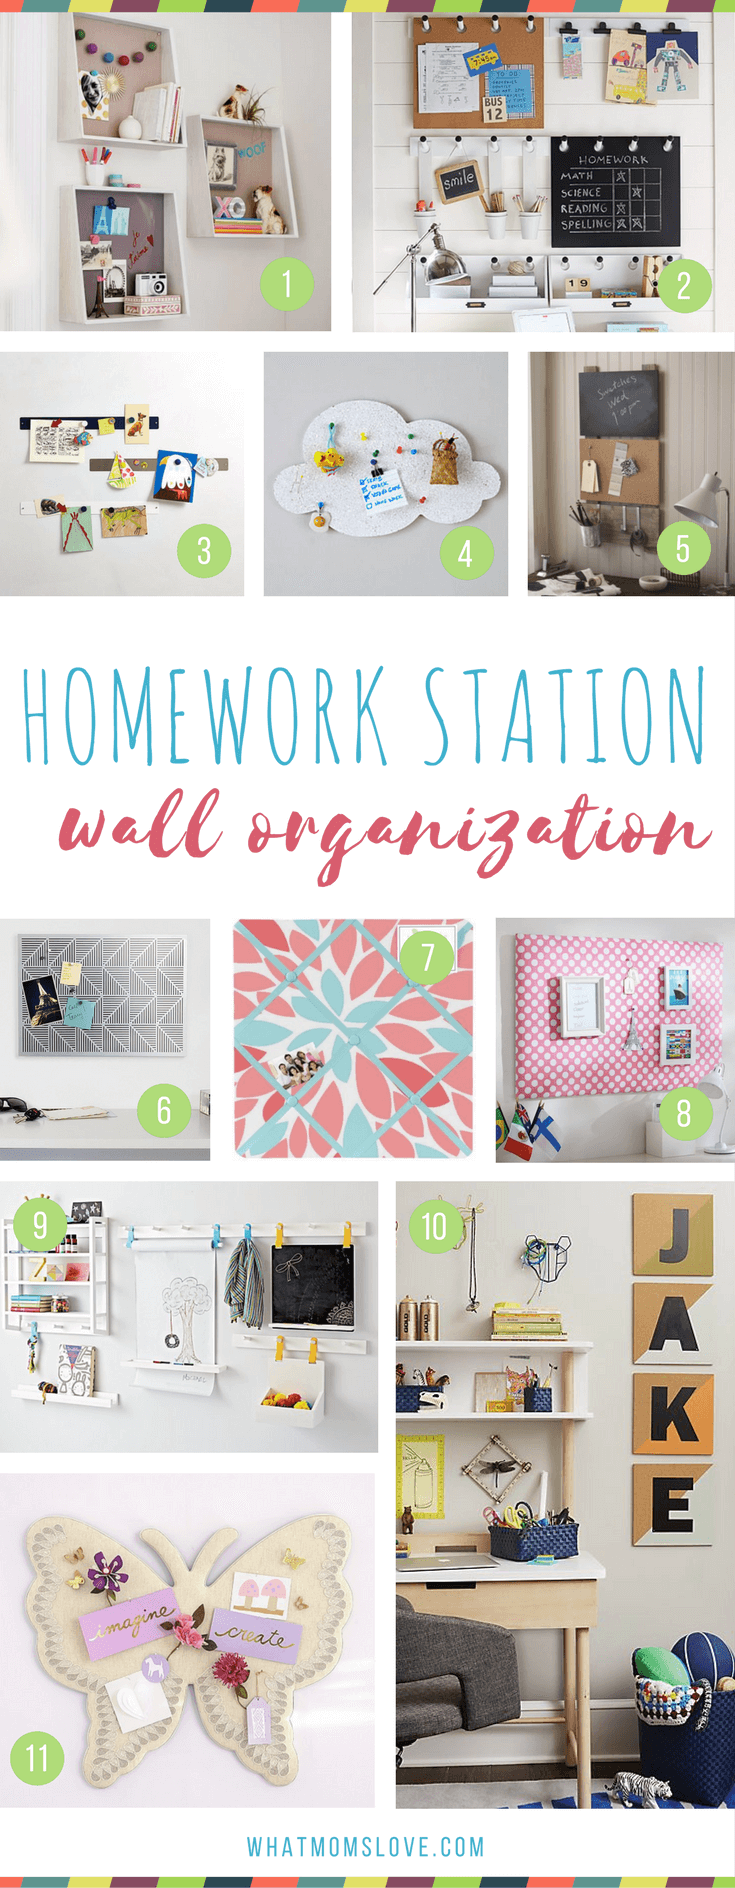 How to make a homework station for kids - wall organization for a study space